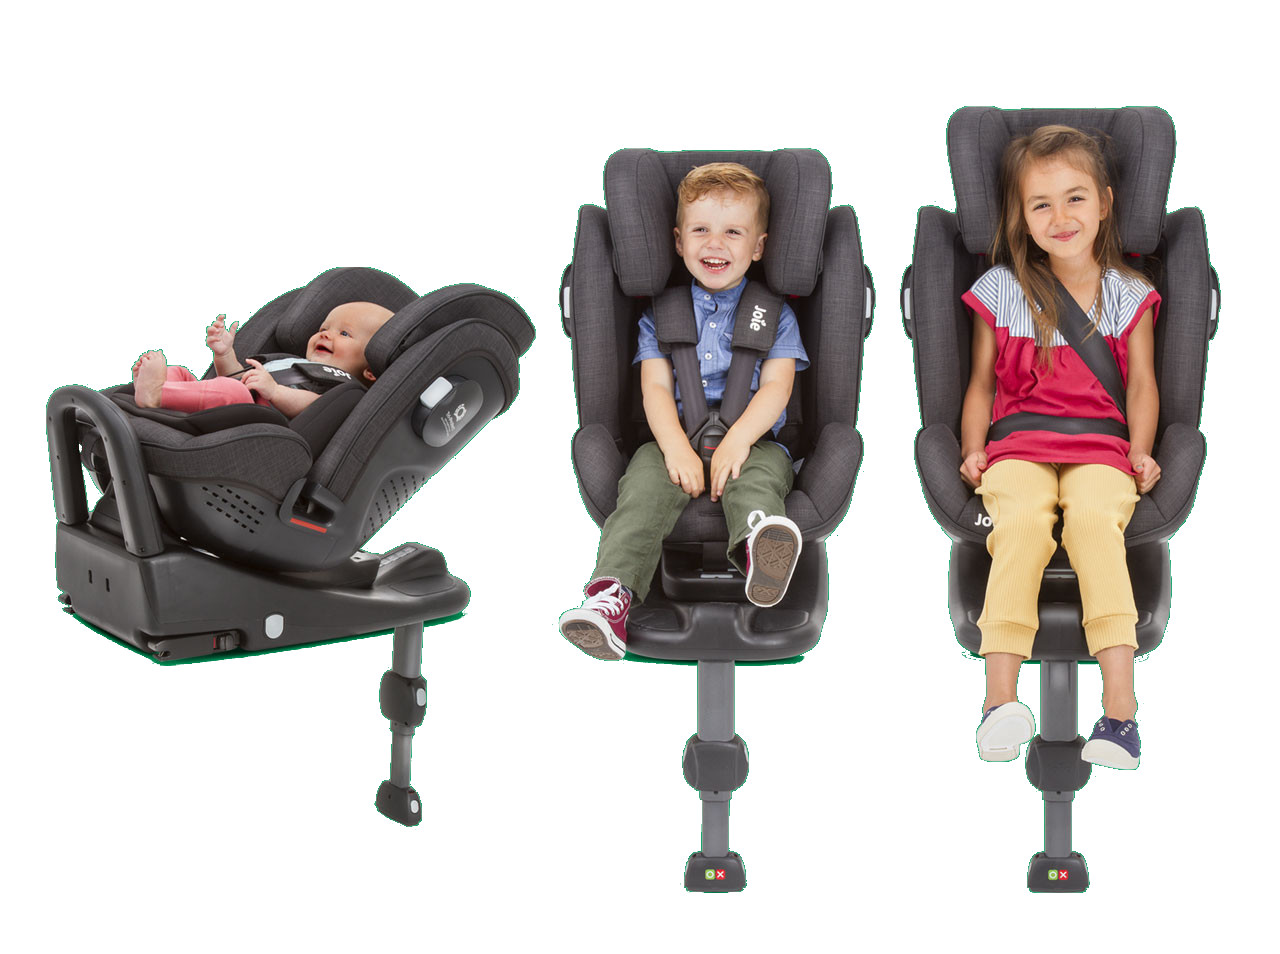 Stages2 - Joie Stages 0-25 Isofix kg kolor Pavement